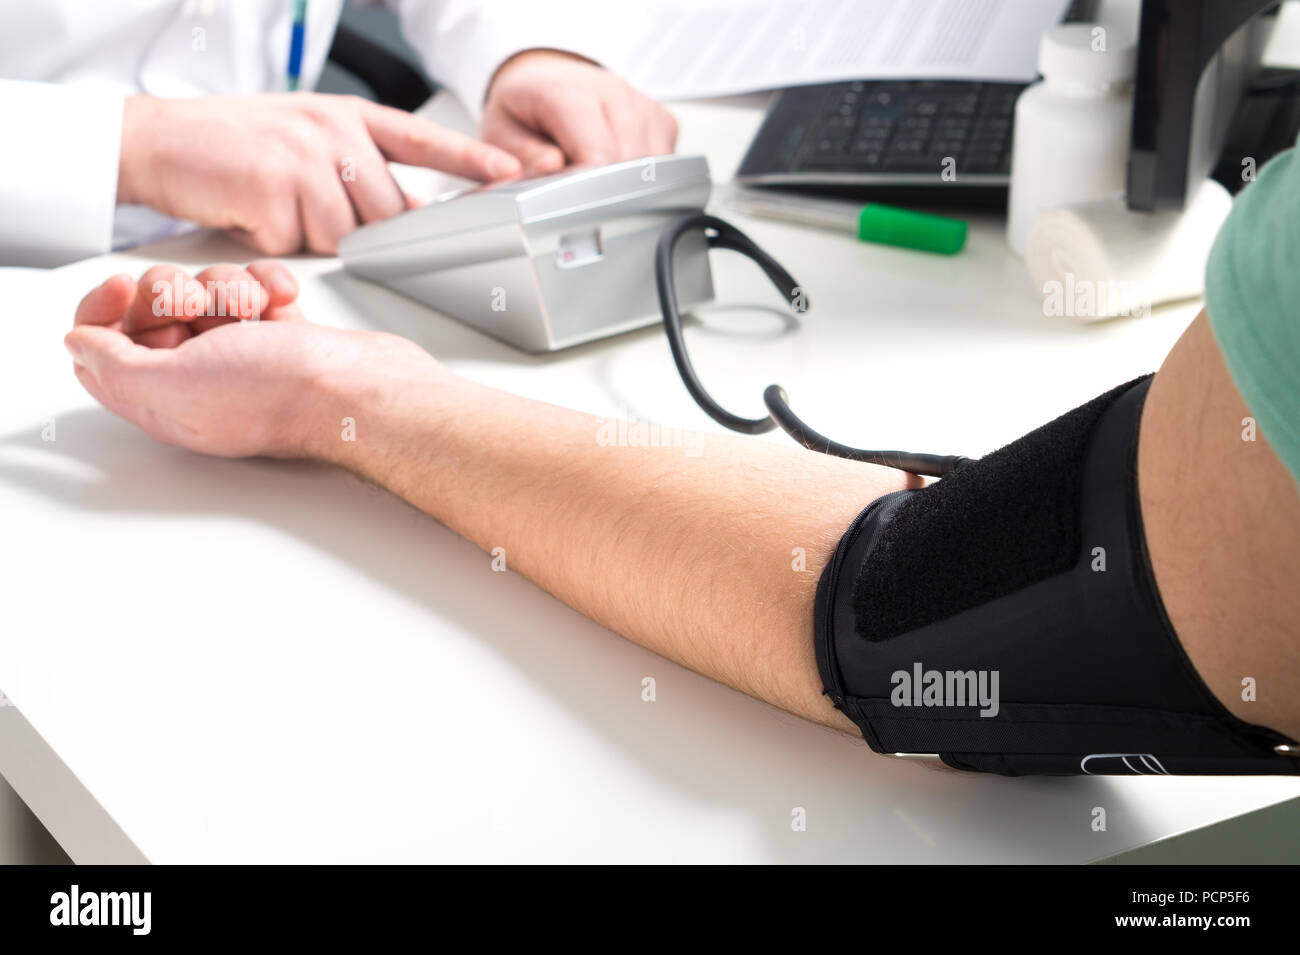 Doctor or nurse measure blood pressure of a patient with meter and monitor device. Hand and arm on emergency room or hospital office table. - Stock Image